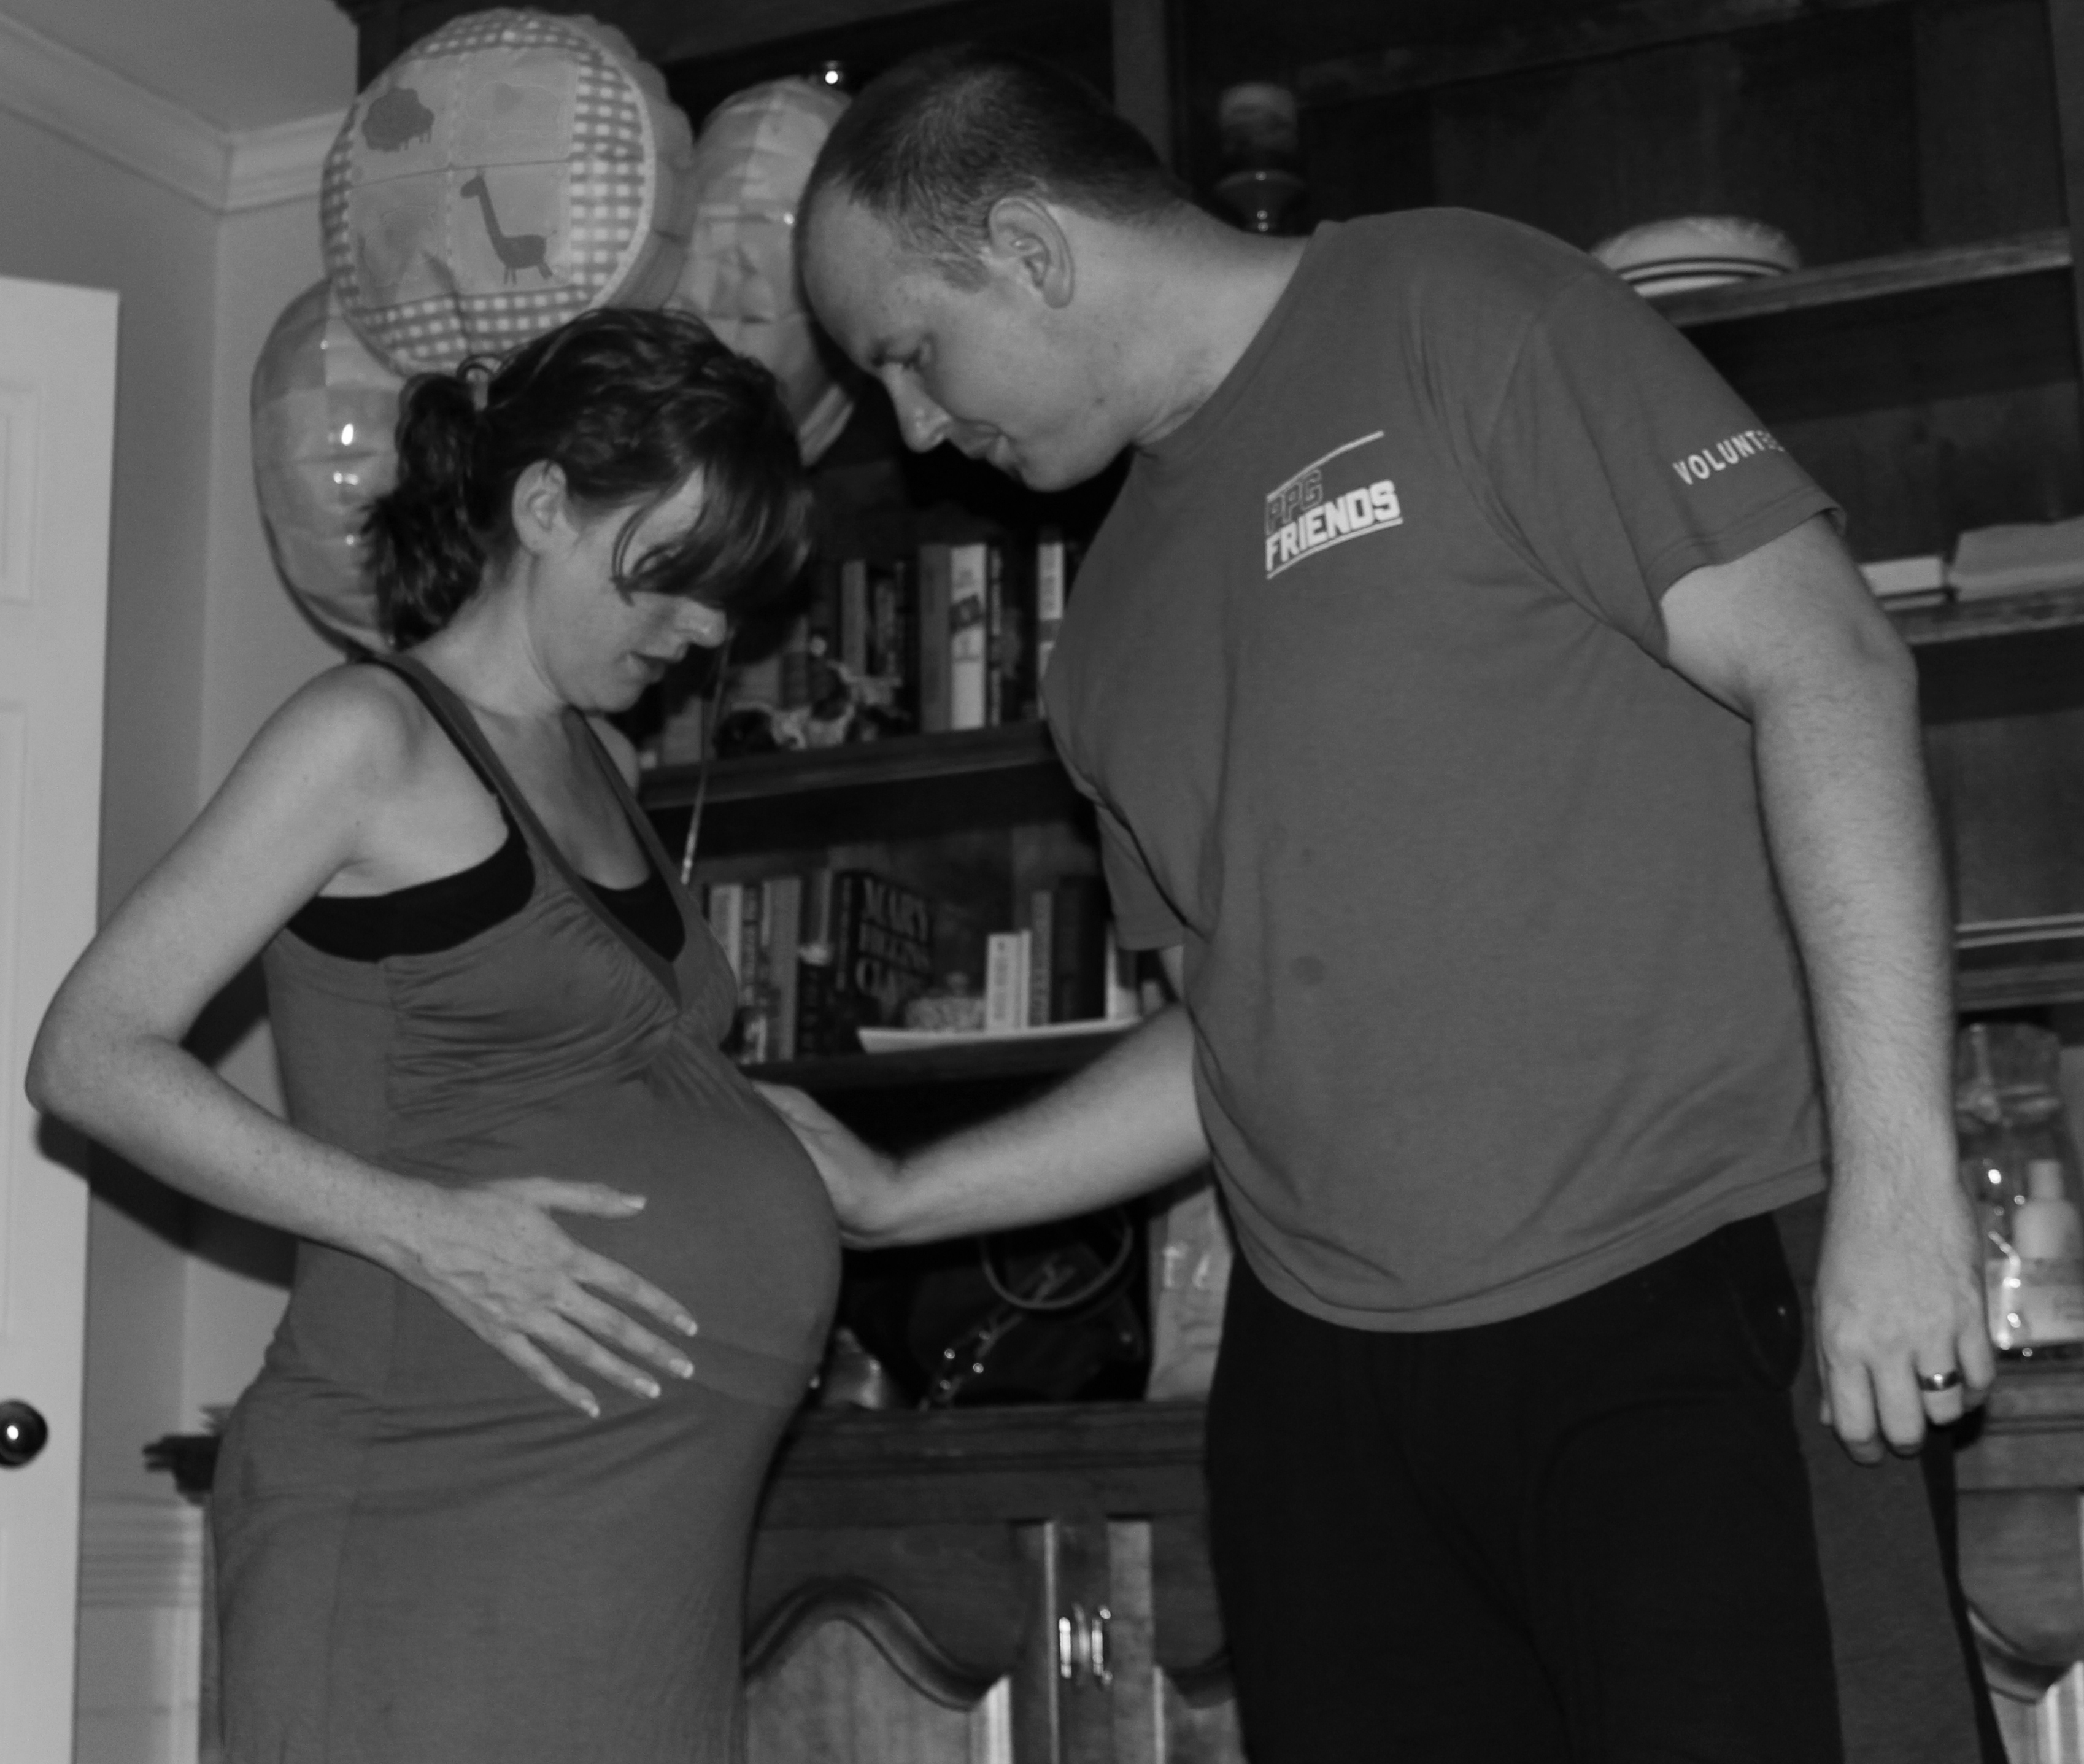 Contractions 5 Minutes Apart: Diary Of A Homebirth